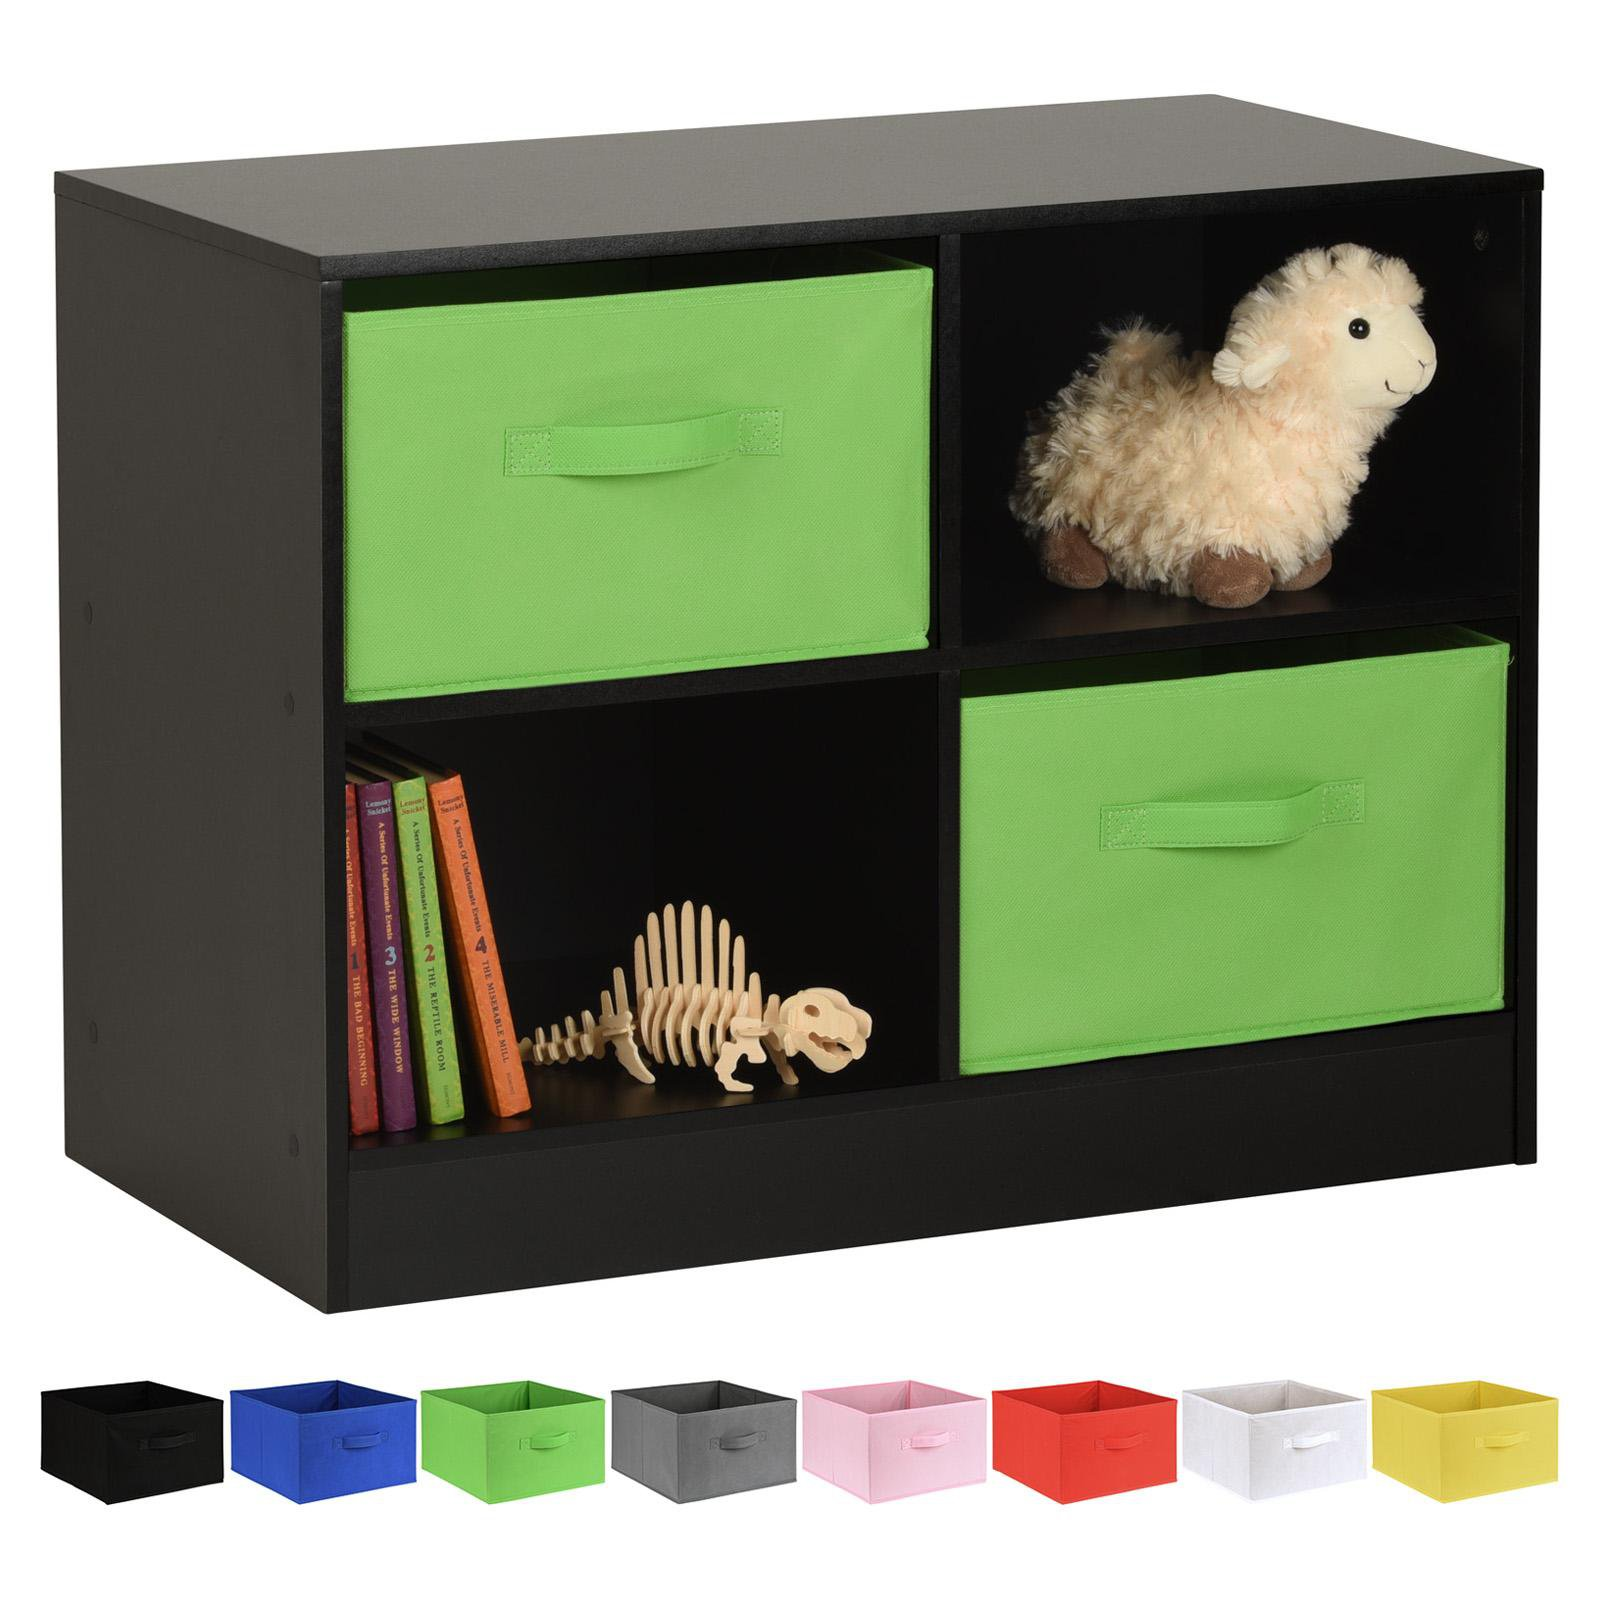 image-Hartleys Black 4 Cube Kids Storage Unit & 2 Handled Box Drawers - Green